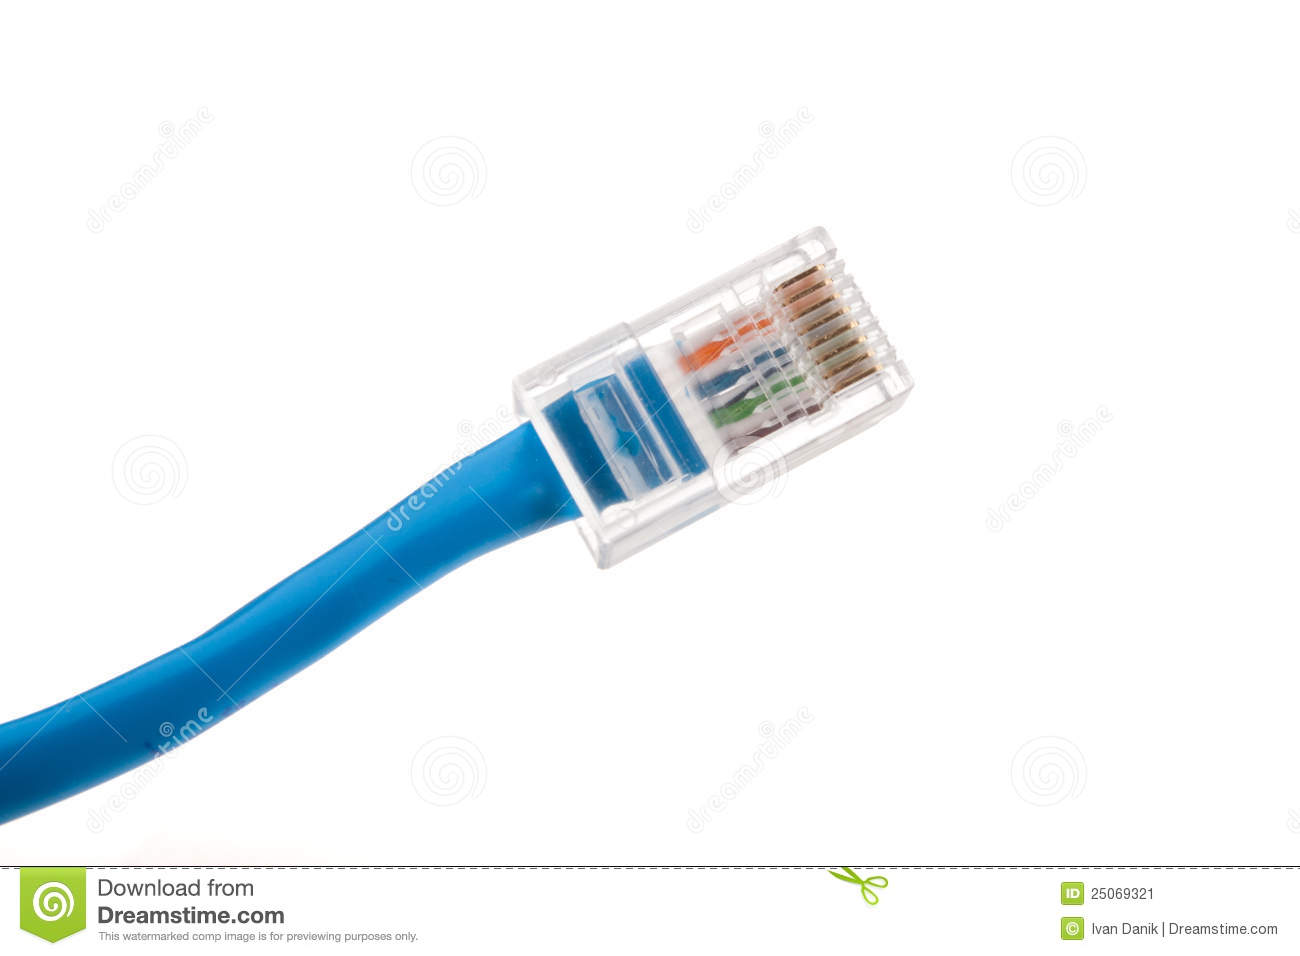 Ethernet cable connector stock image. Image of communication - 25069321